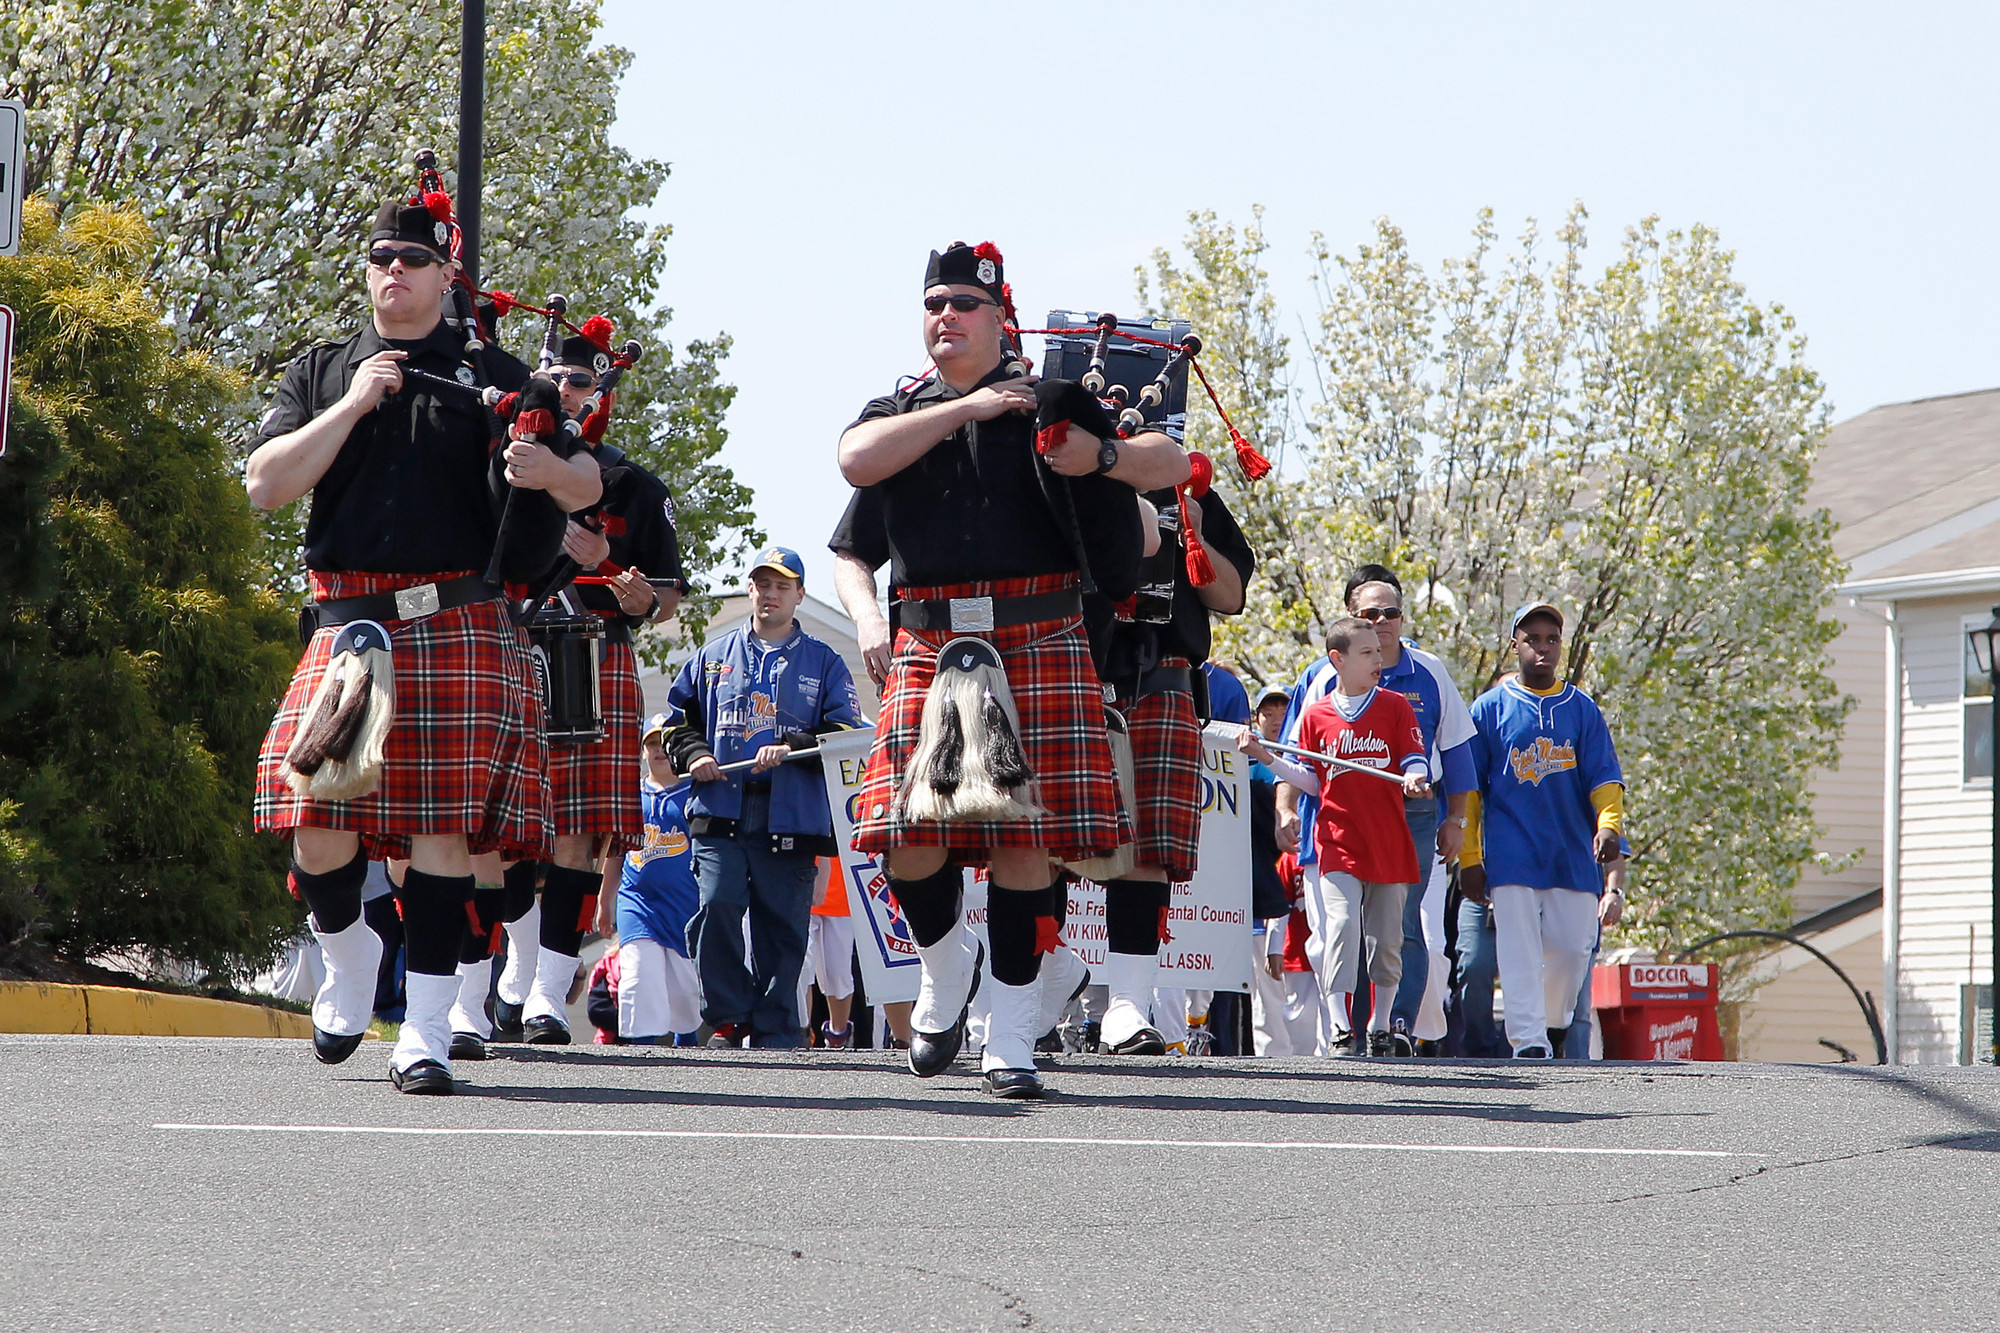 The Nassau County Firefighters Bag Pipes and Drum Corps and the Challenger Division players led the East Meadow Baseball Softball Association parade as it entered the ball field complex on Merrick Avenue.